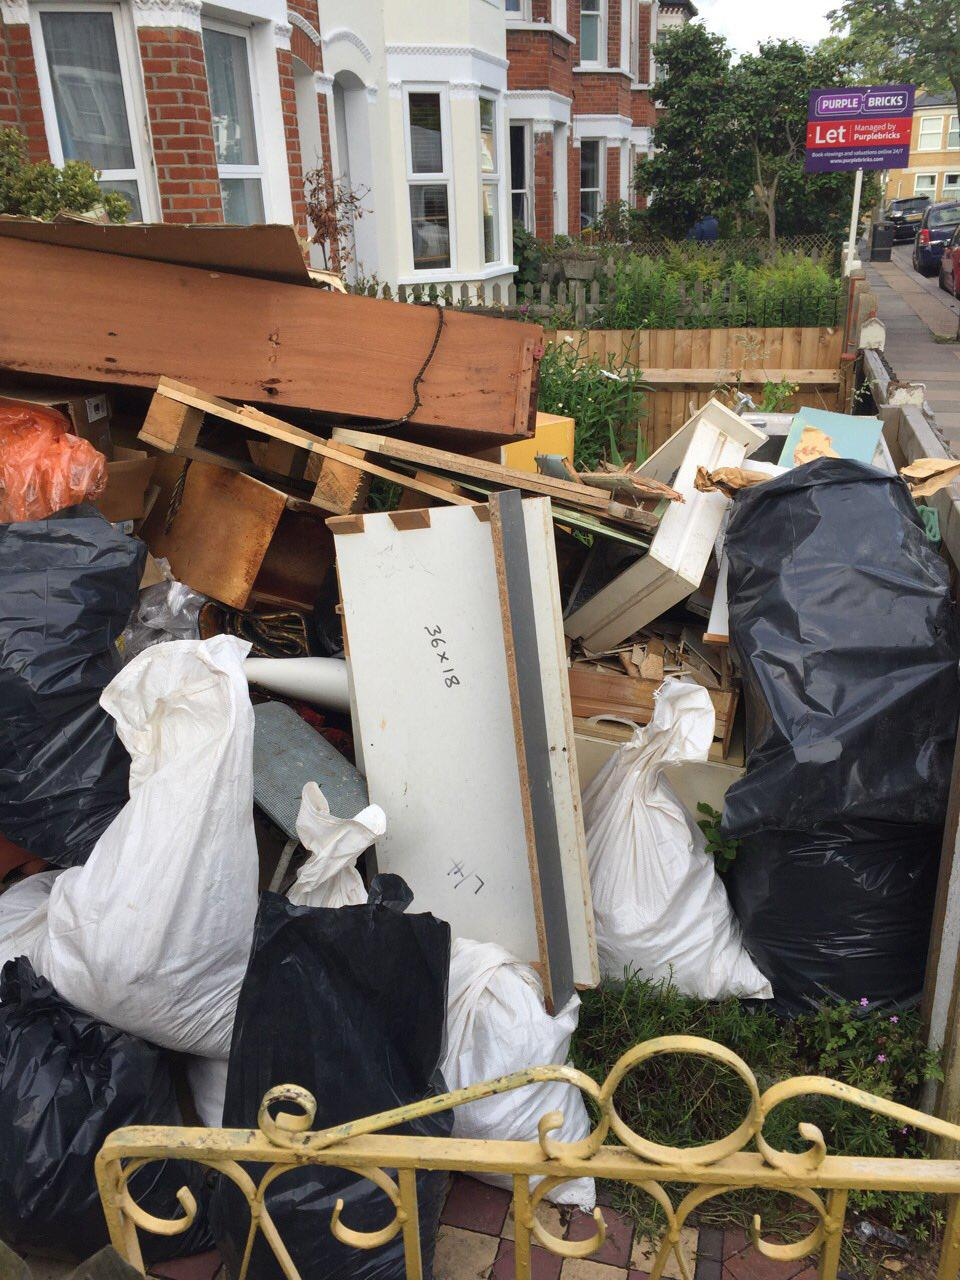 SE8 cellar clearance Deptford